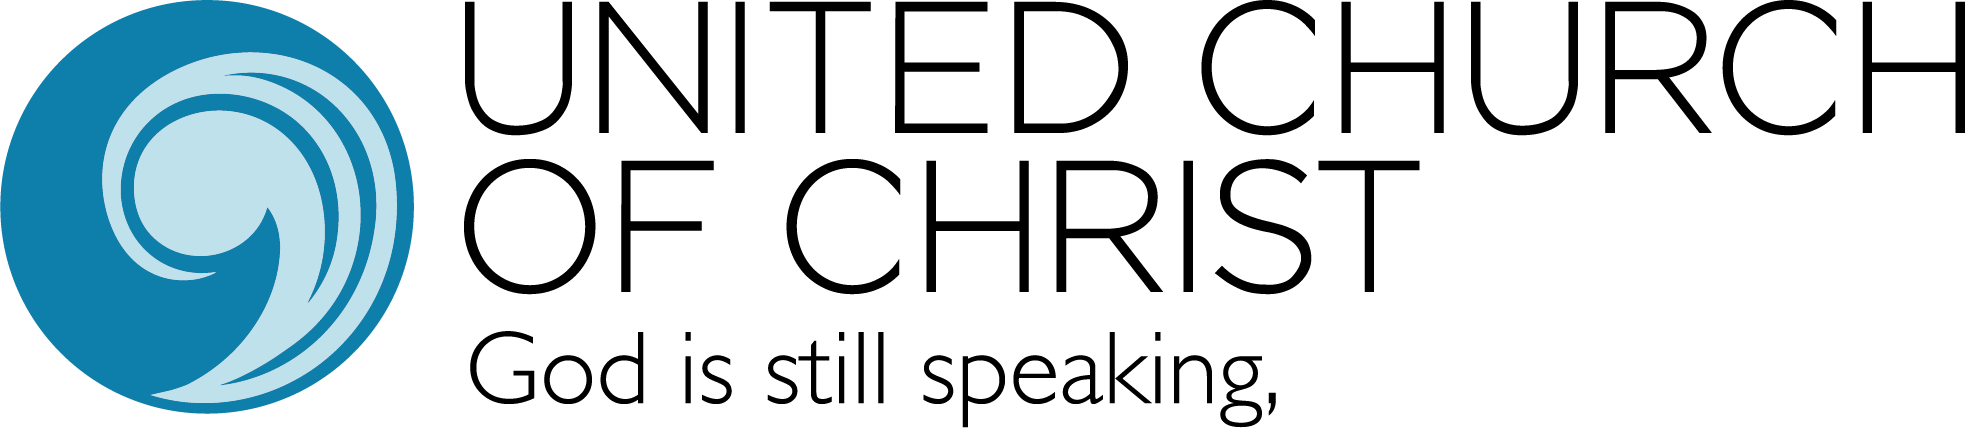 United Church of Christ, God is Still Speaking logo